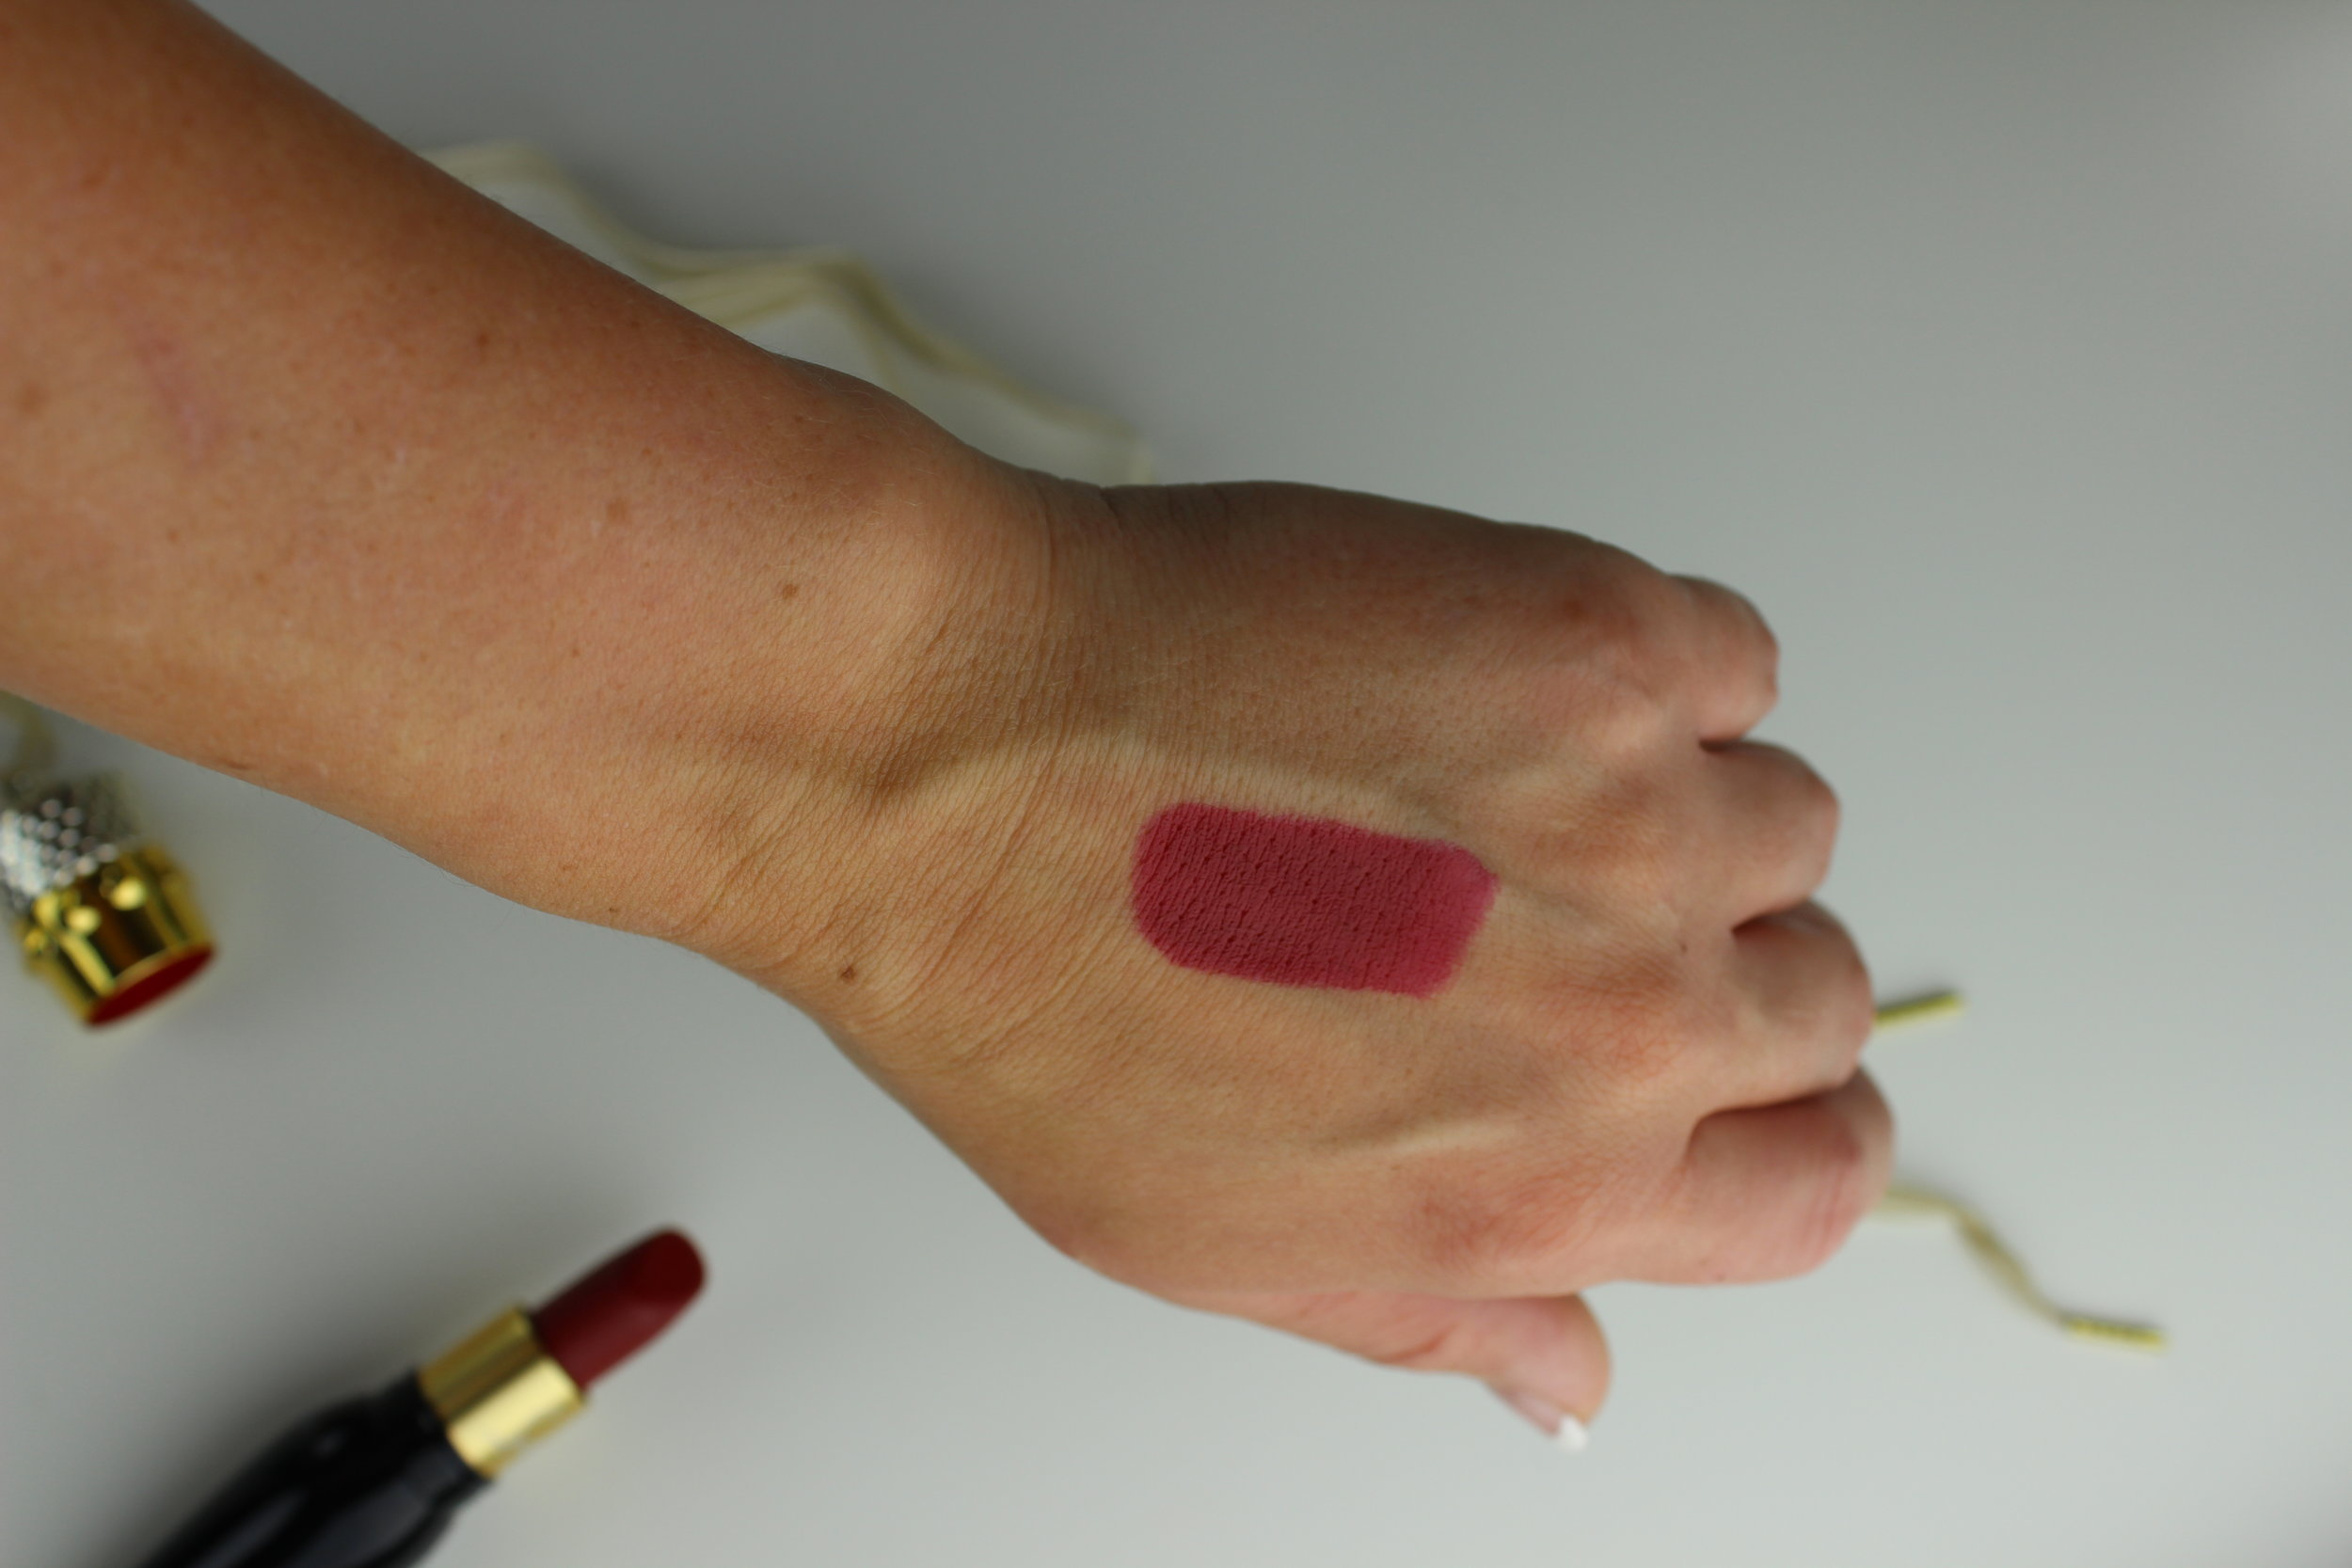 Velvet Matte Lip Colour in Rouge Louboutin